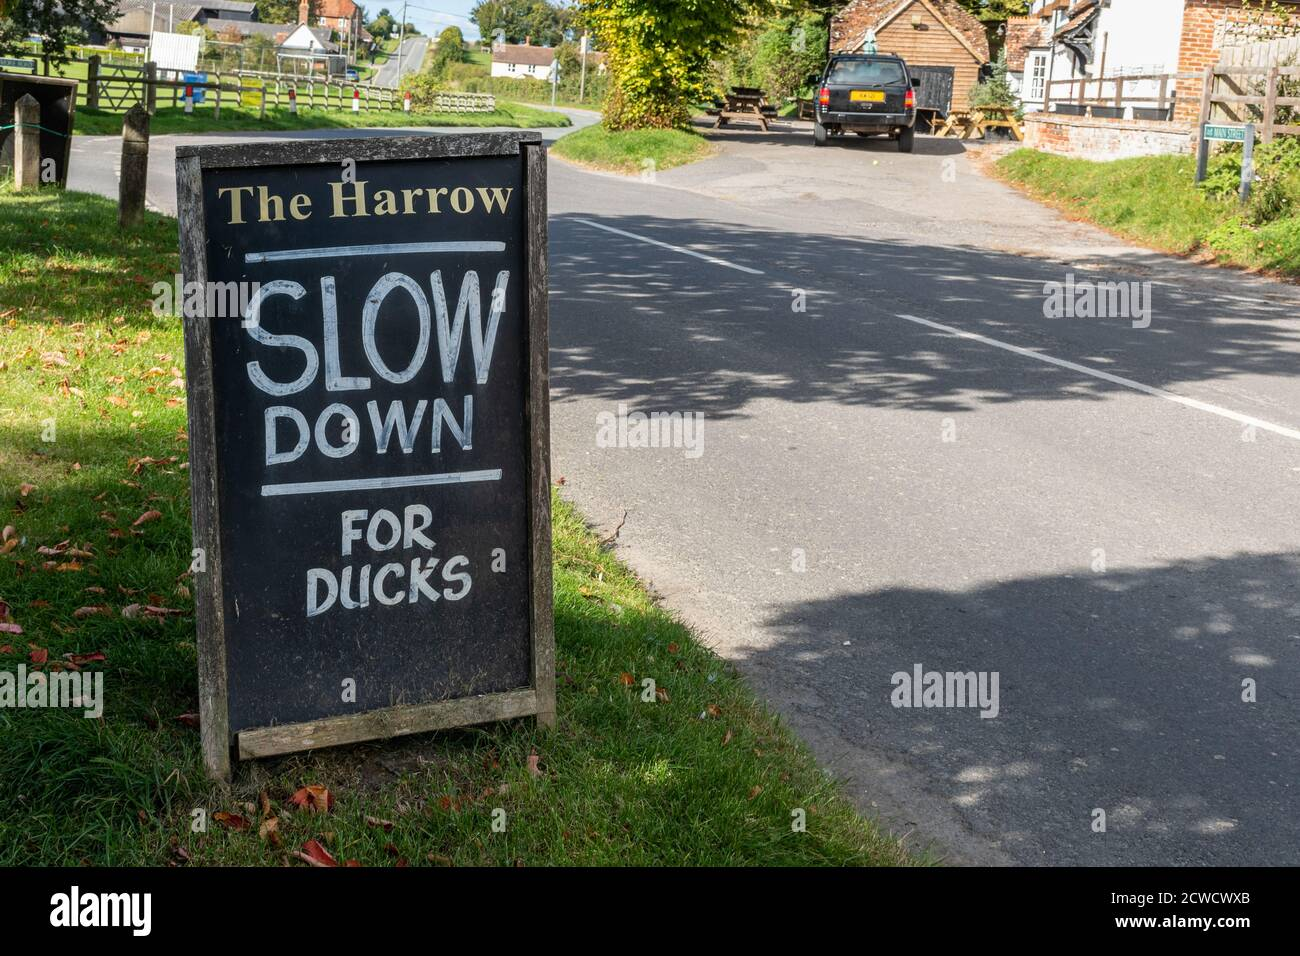 West Ilsley, Berkshire, UK - sign close to The Harrow Pub and duck pond asking drivers to slow down for ducks Stock Photo